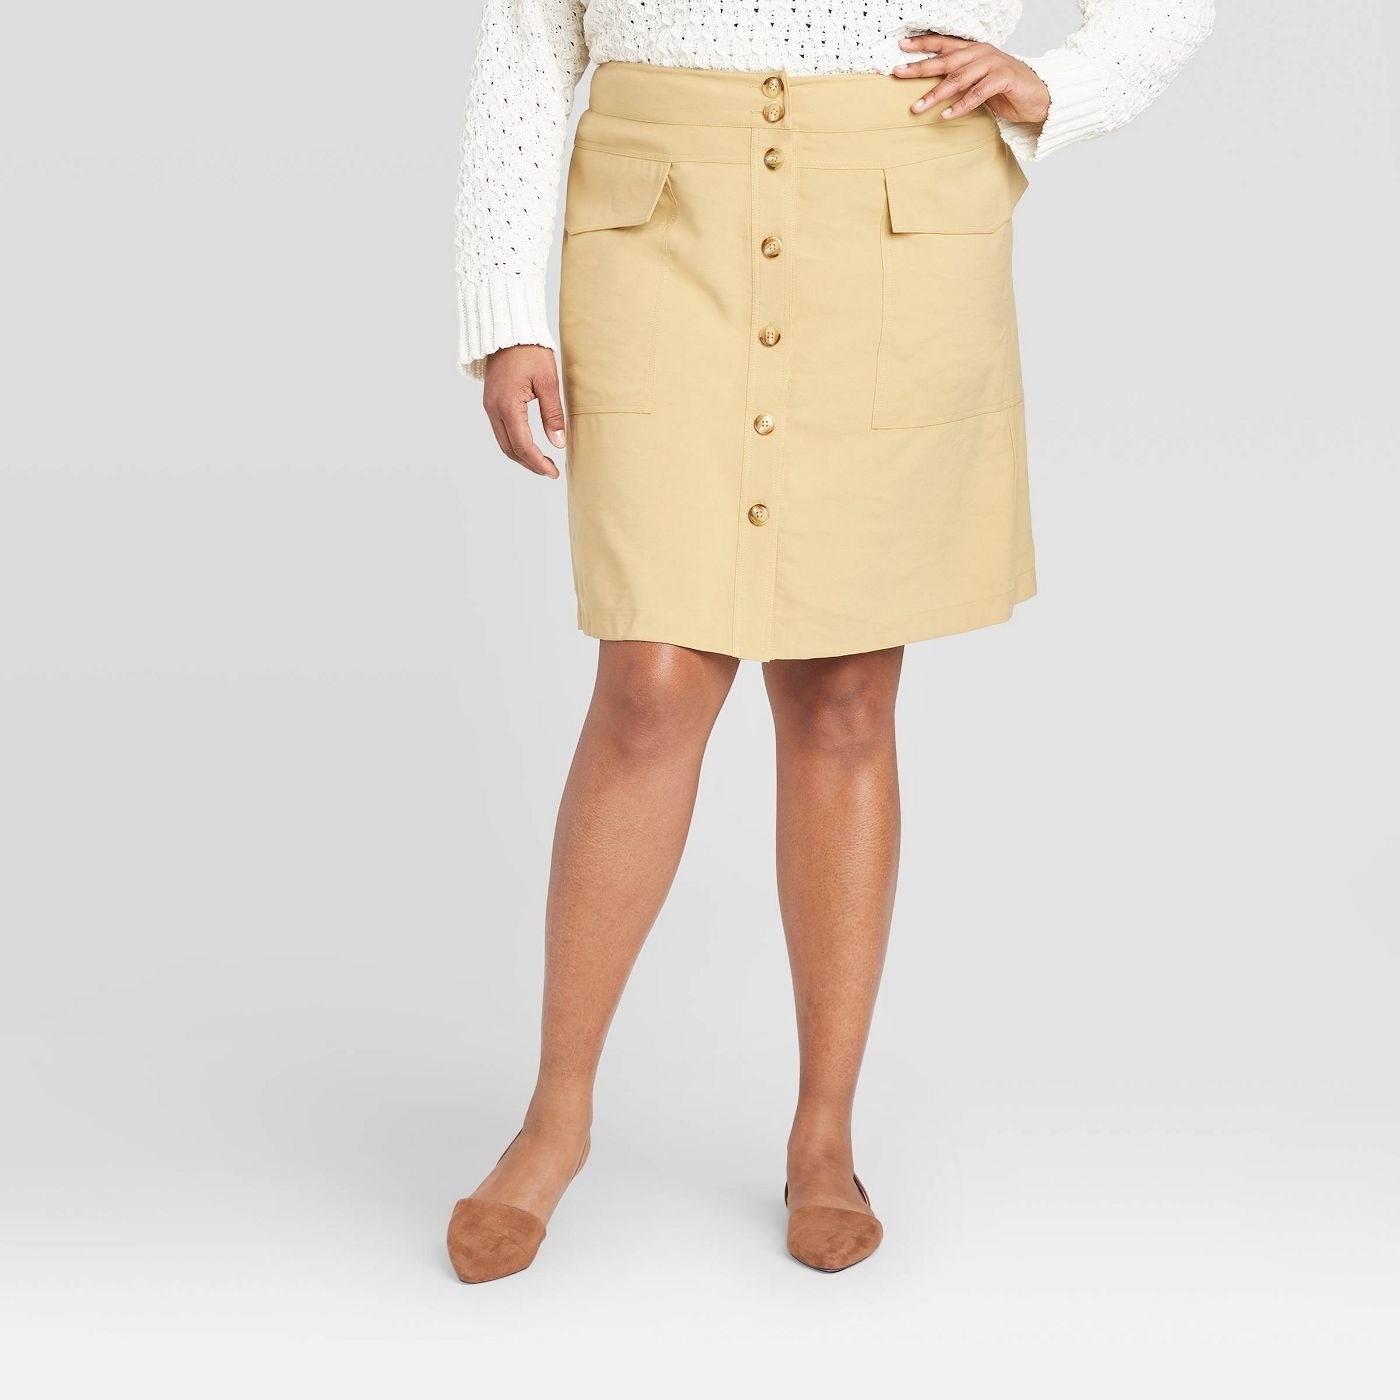 A model in a beige button up skirt that falls just above the knee